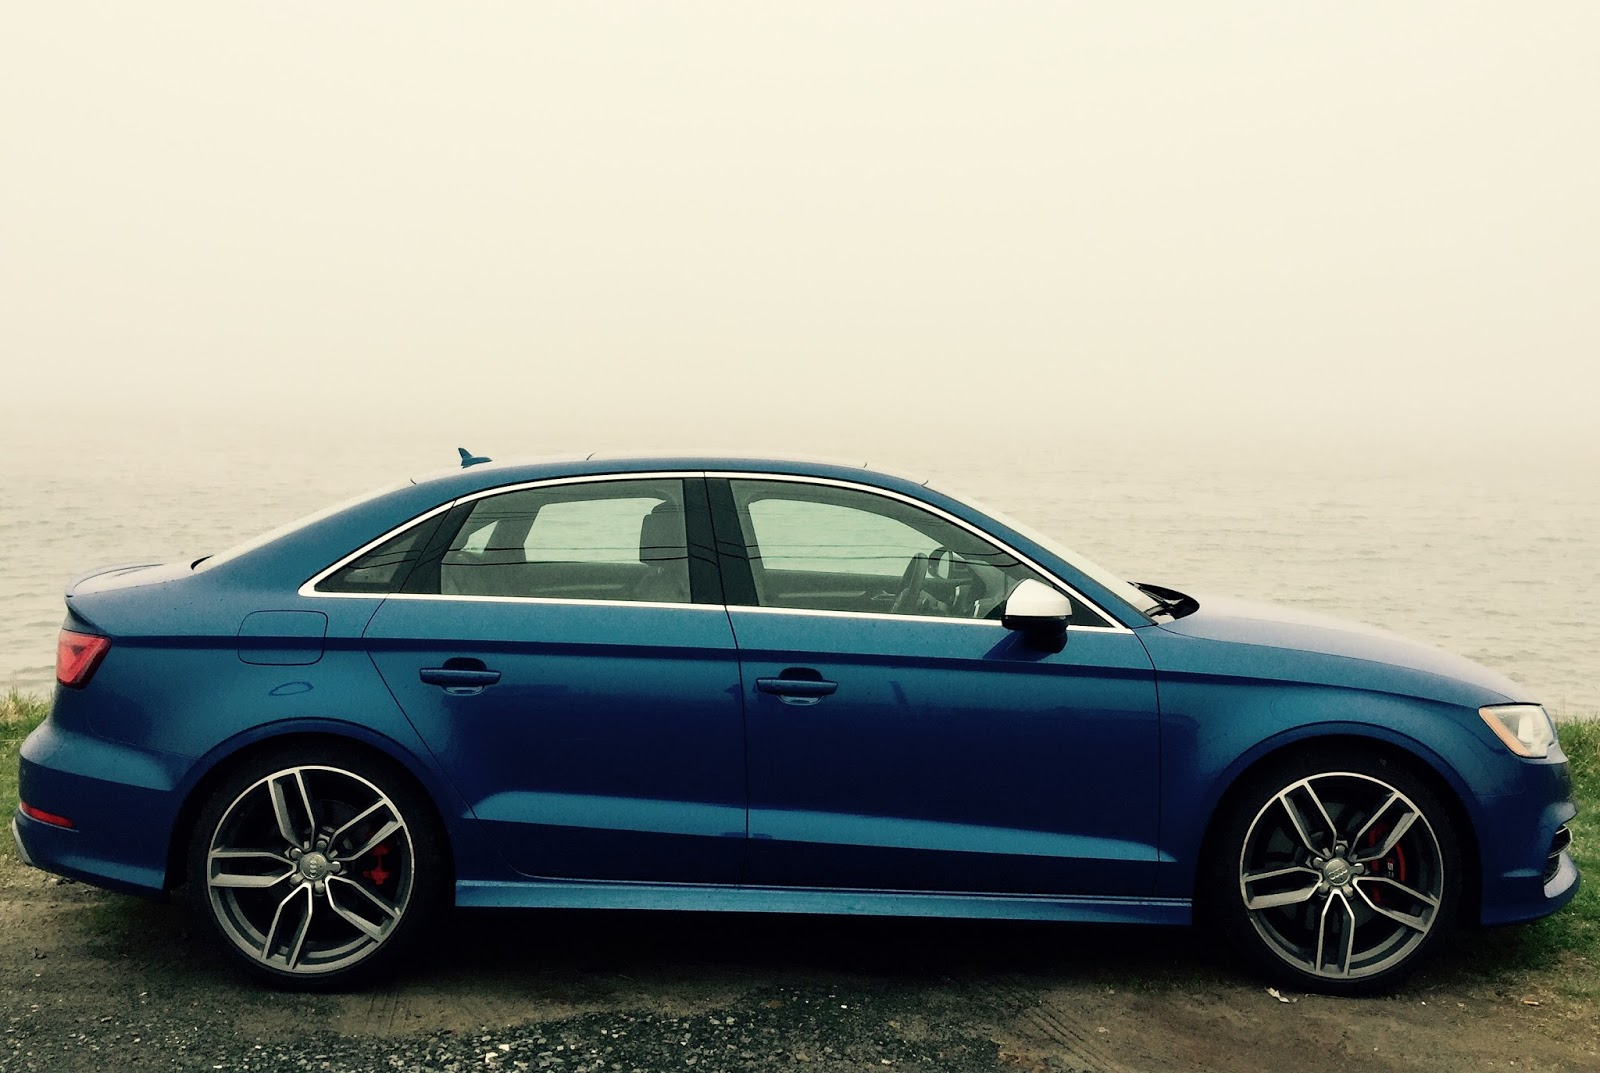 Audi 2015 audi s3 specs : 2015 Audi S3 Review – Not Flawless But Far From Flawed   GCBC